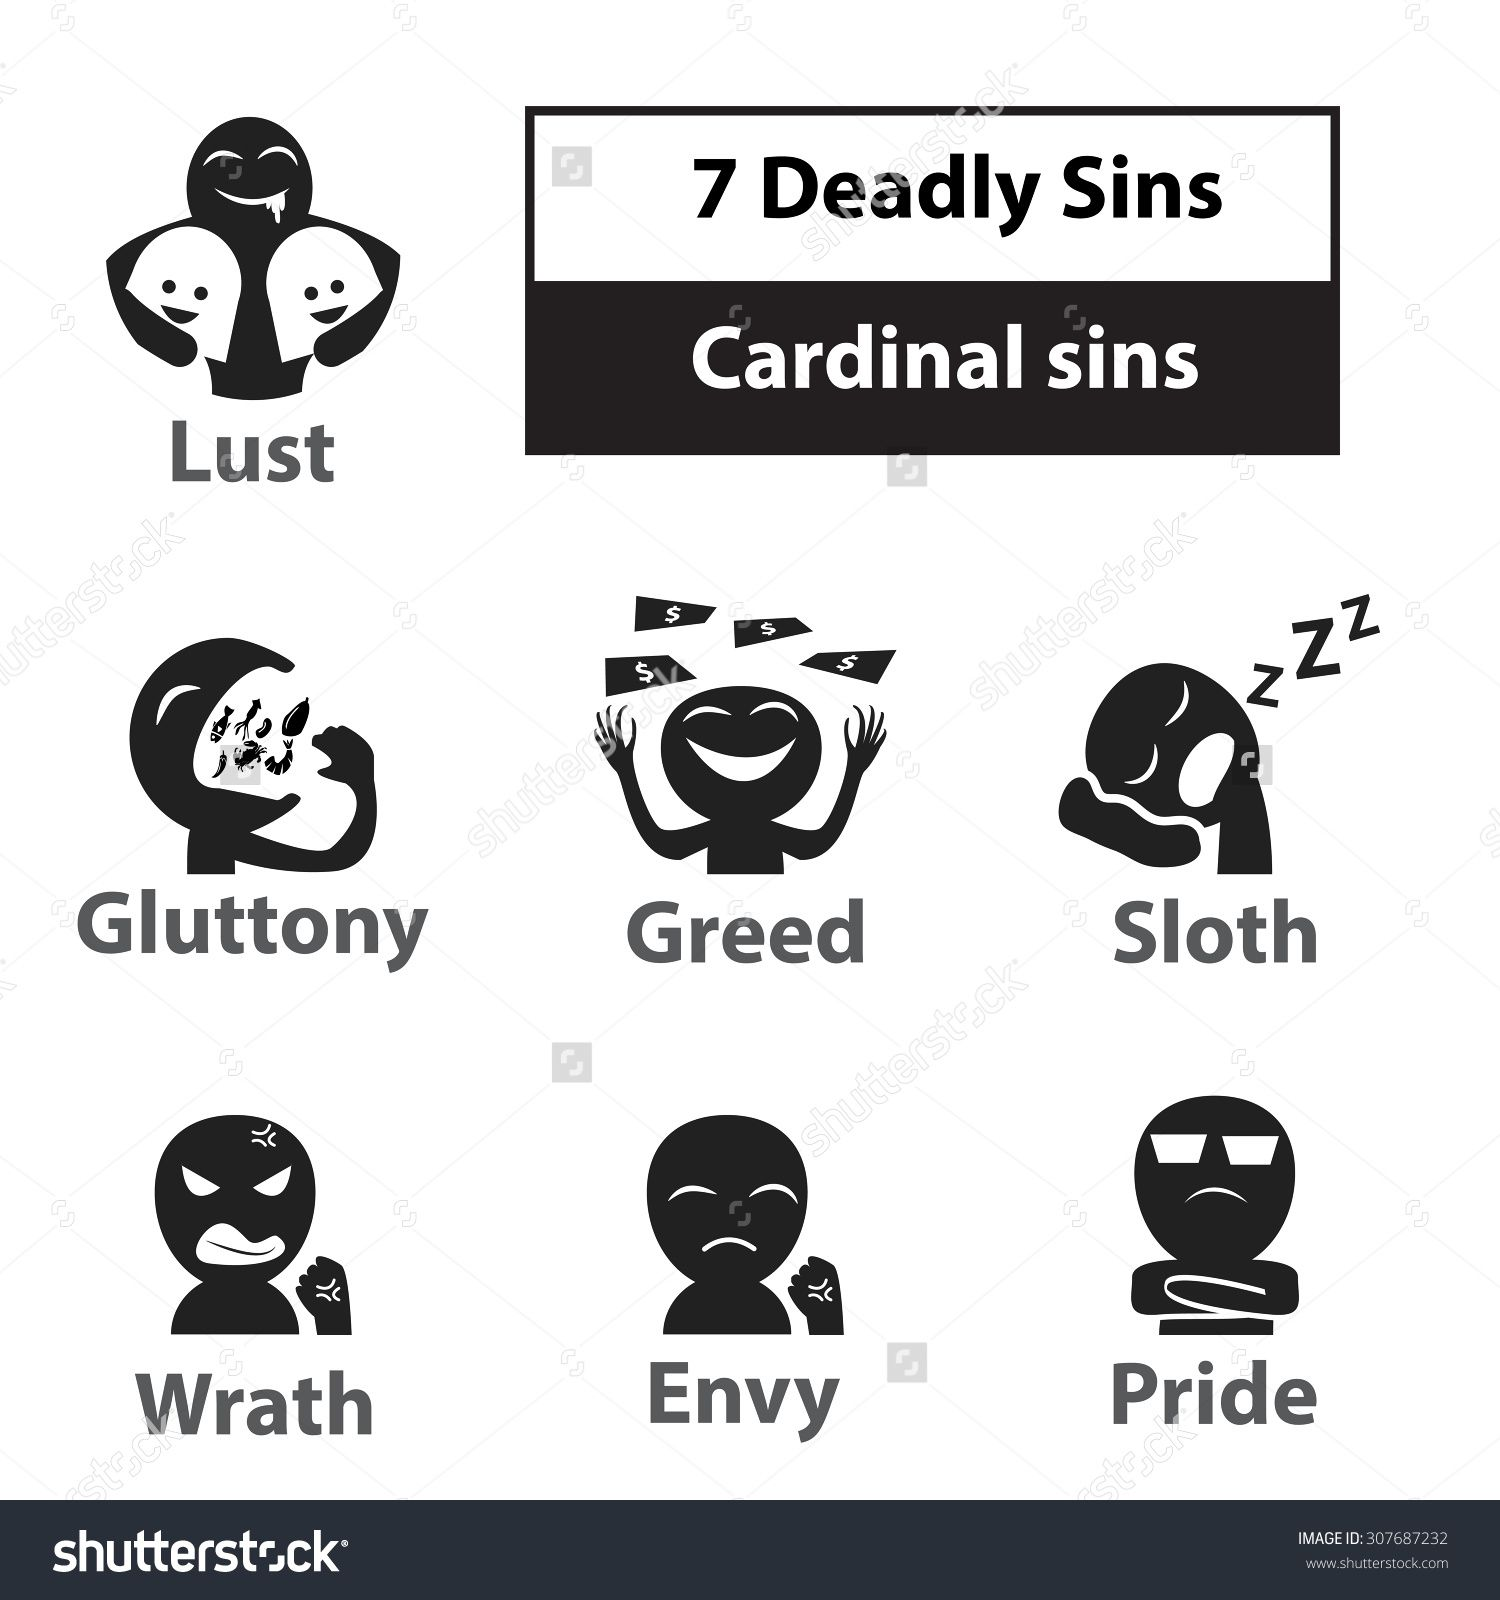 Pin By Gwen On 7 Deadly Sins